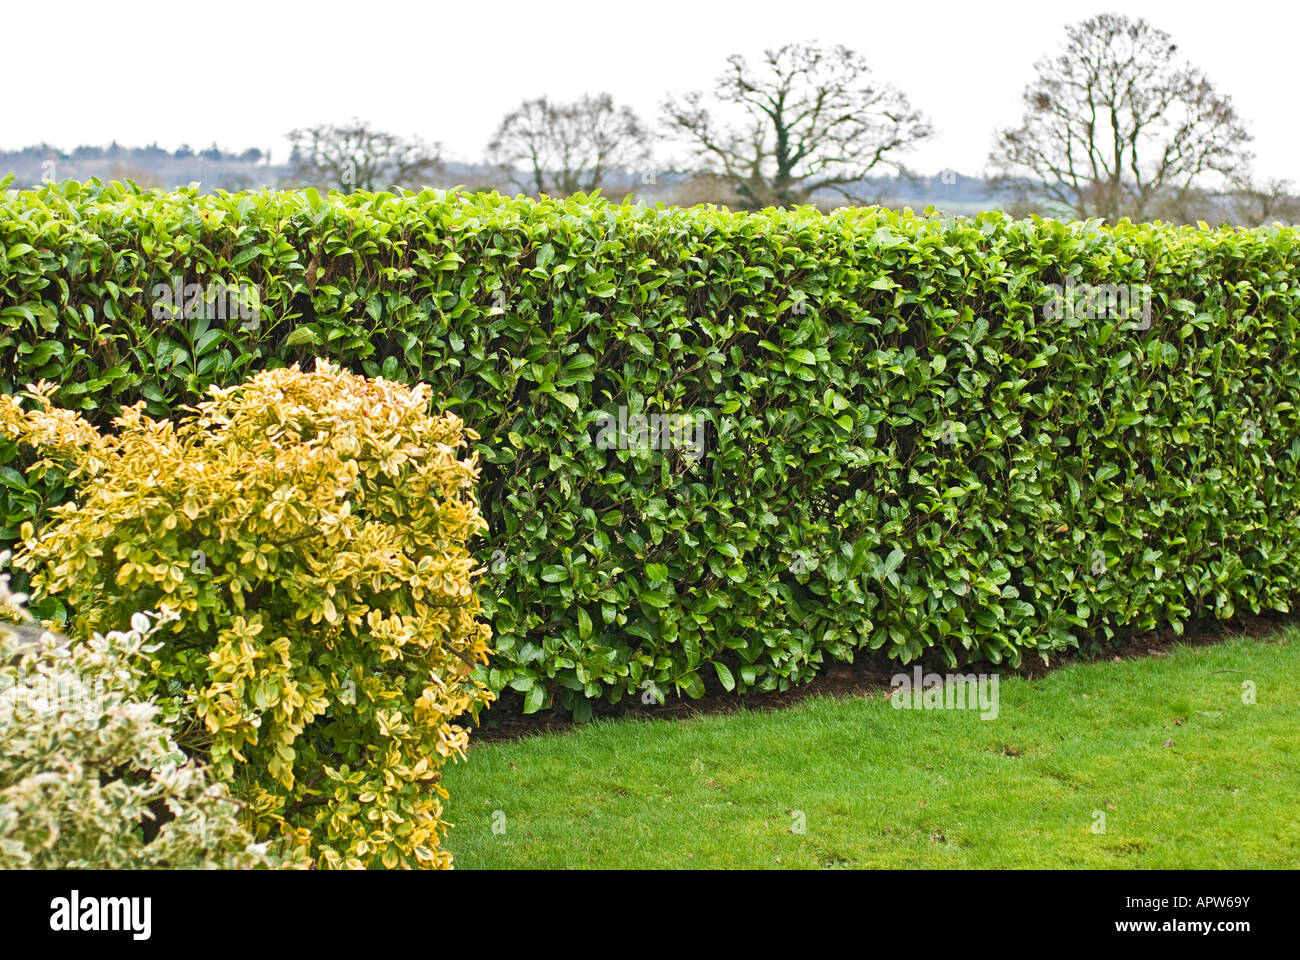 Neatly clipped laurel hedge in a Wiltshire garden UK - Stock Image